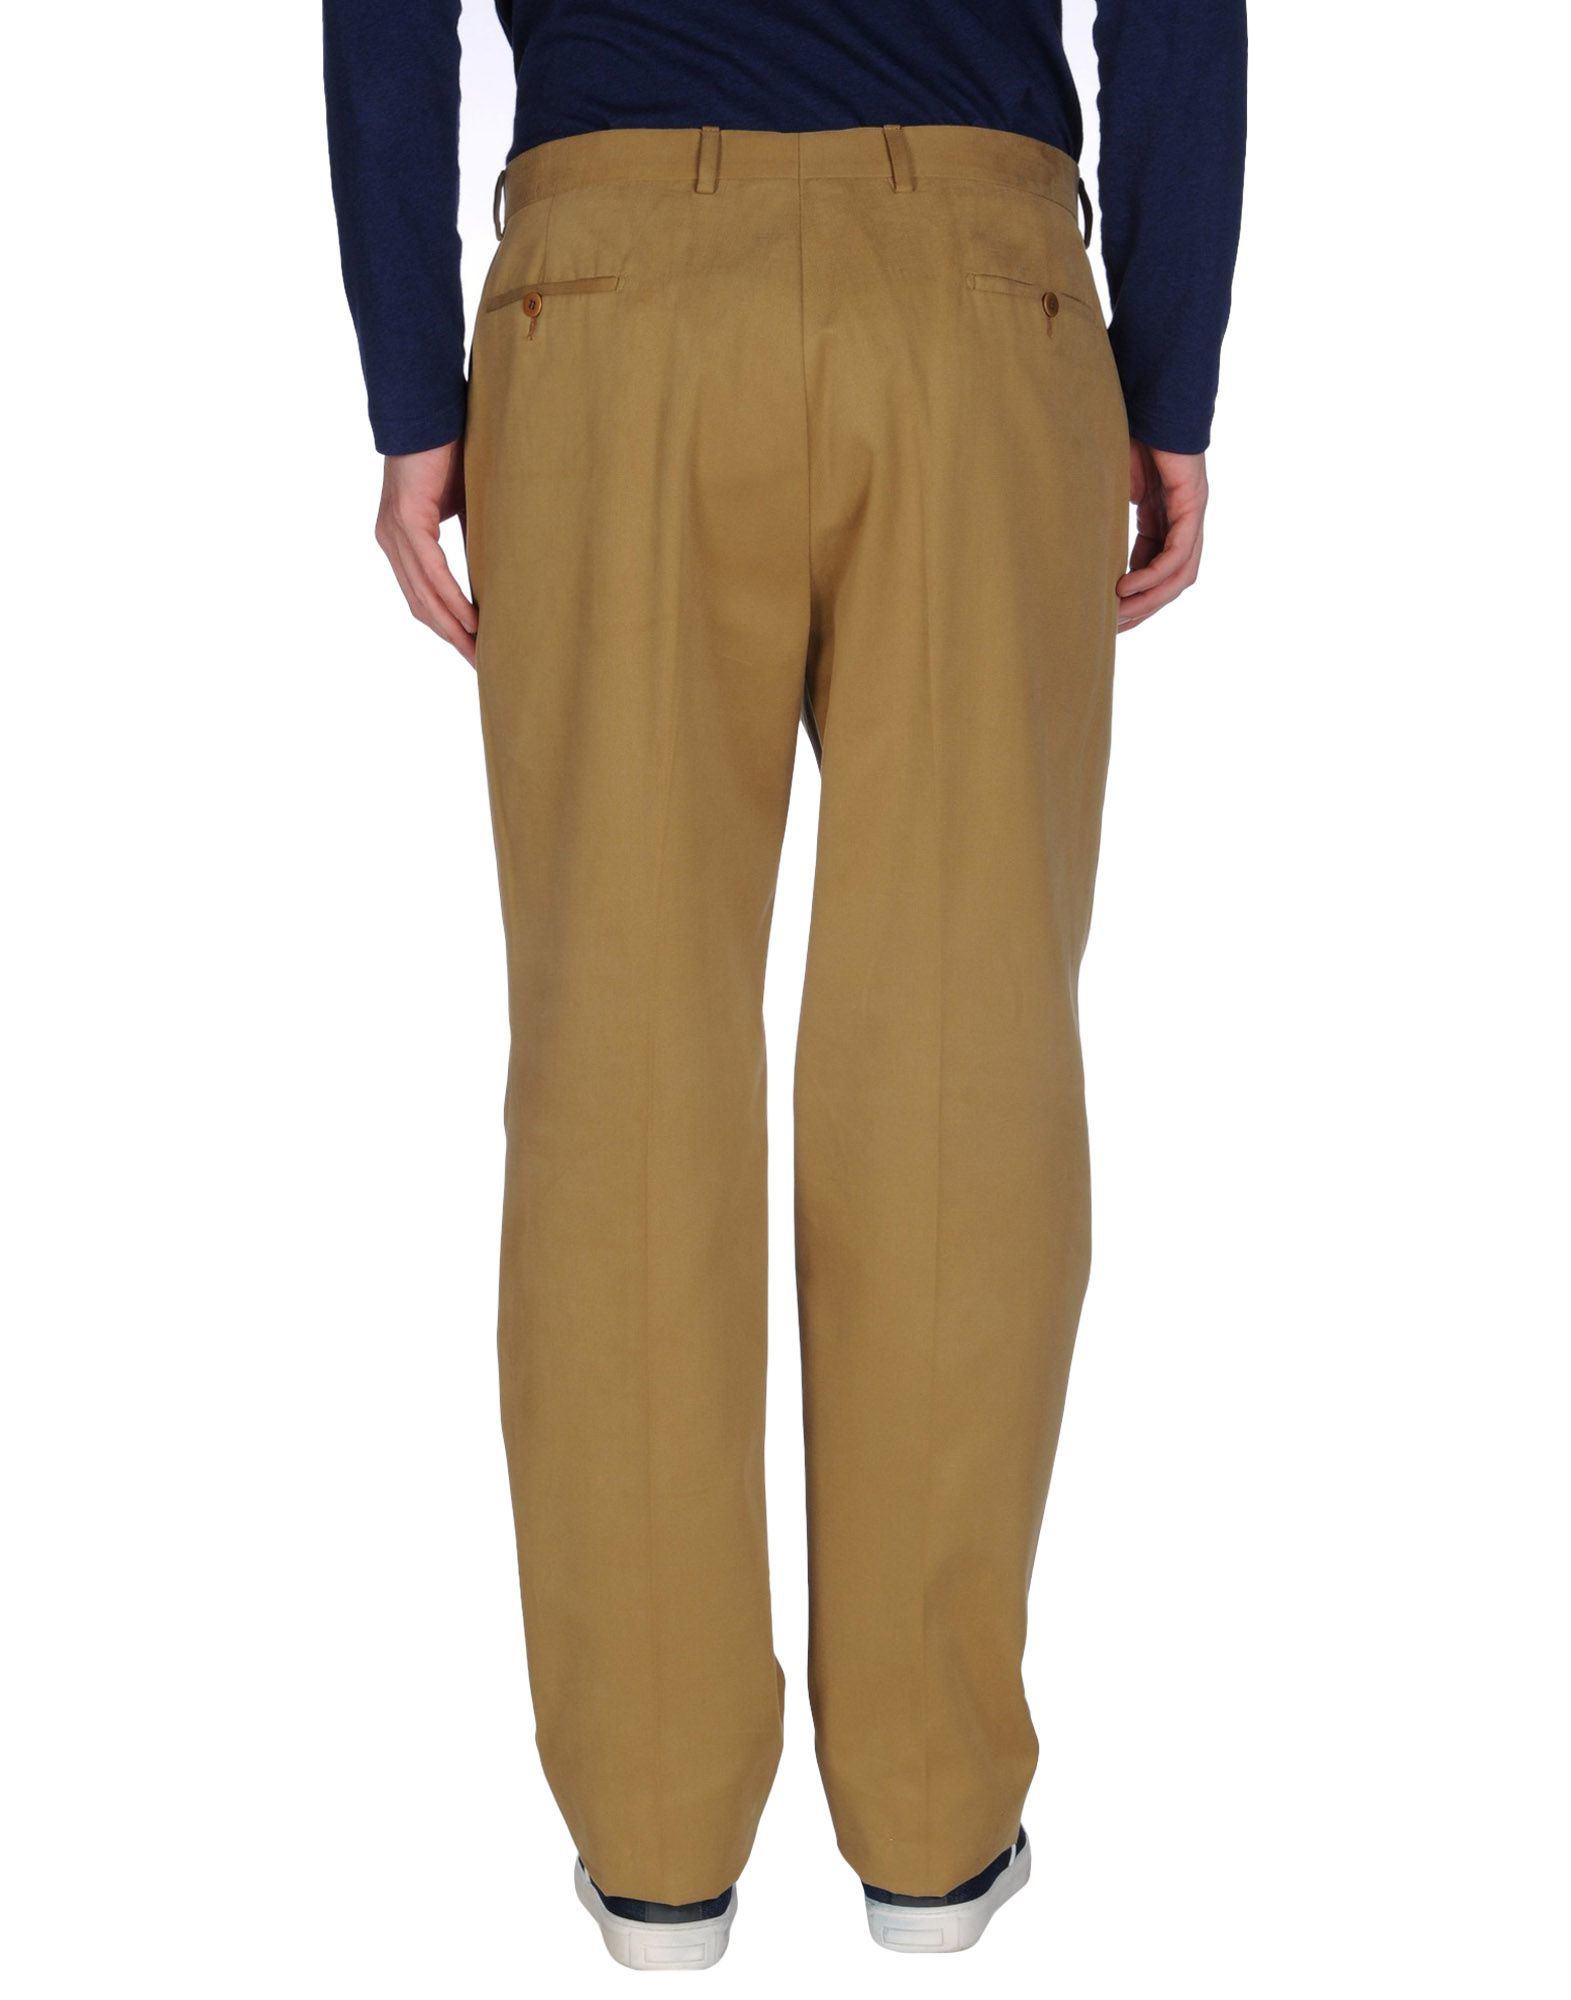 Tagliatore Cotton Casual Pants in Camel (Natural) for Men